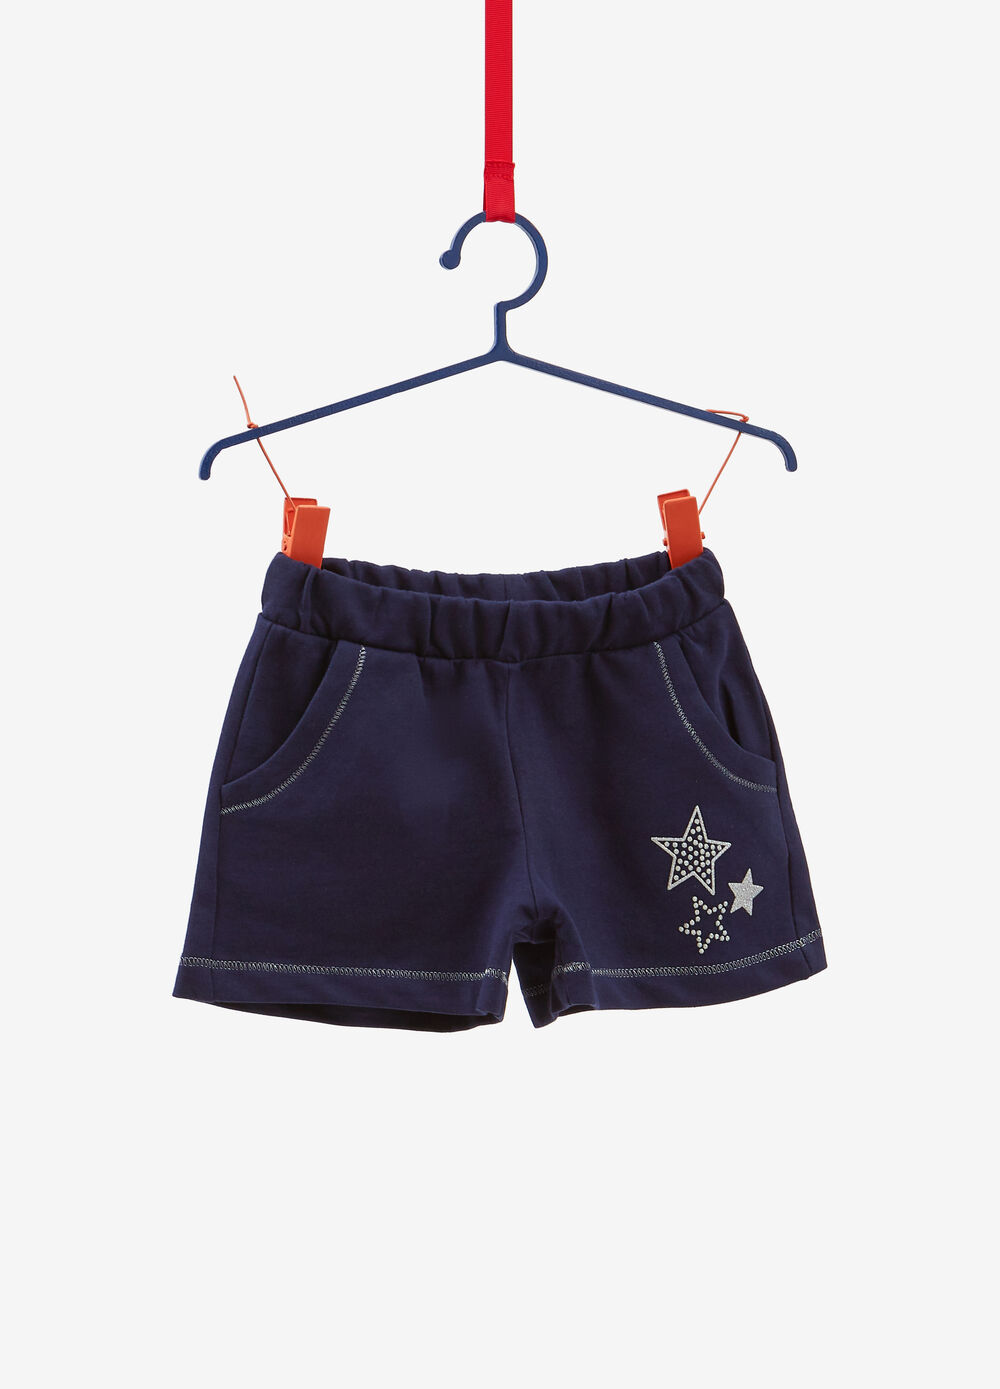 Shorts in 100% cotton with stars print